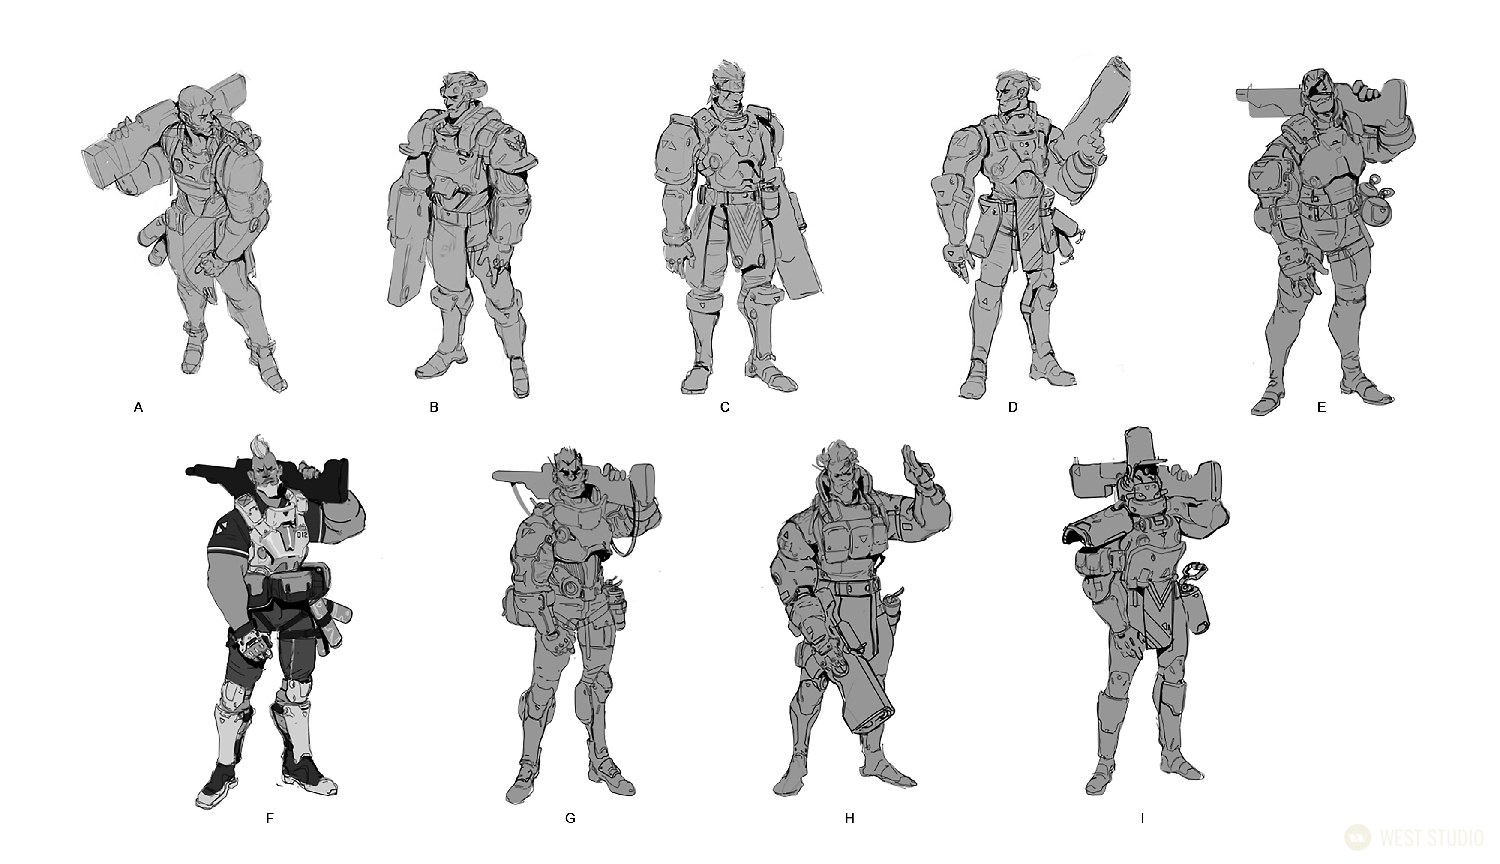 concept art, visual development, character design, game development, science fiction, sci-fi, realistic